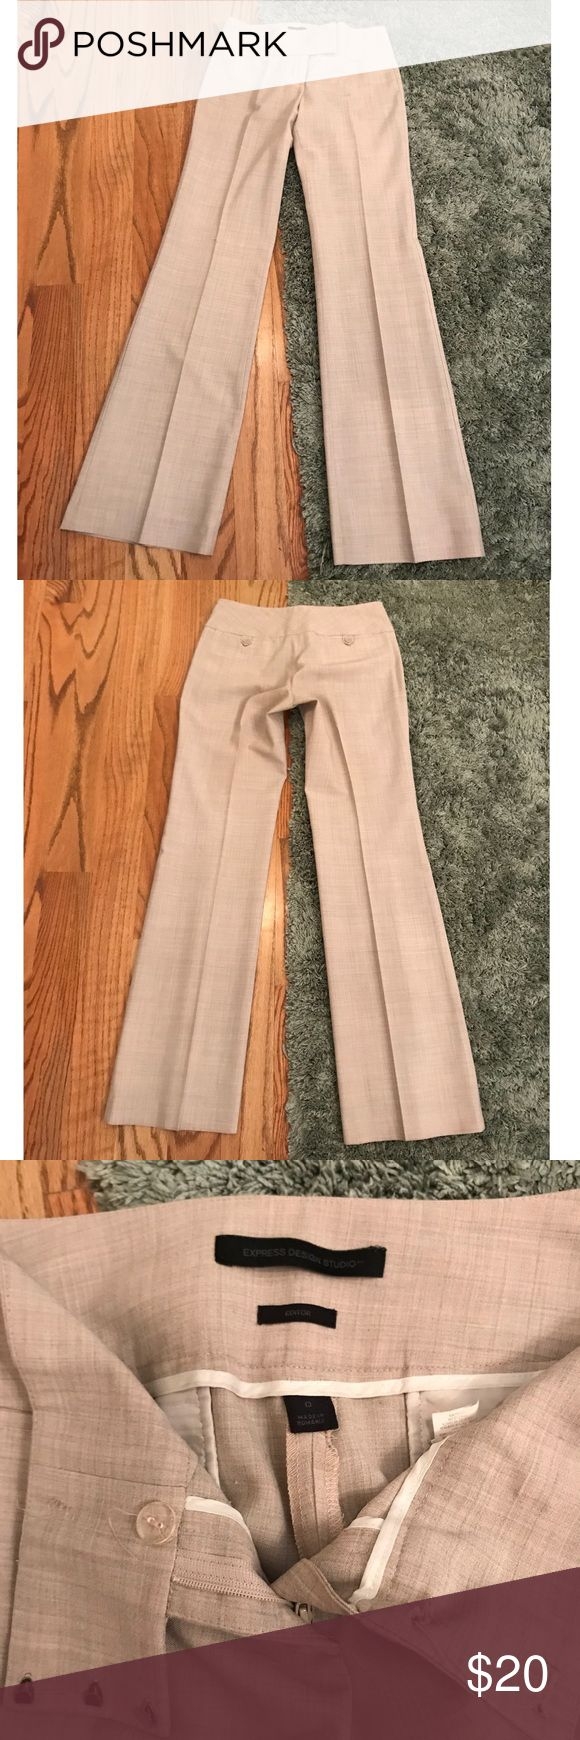 "Express ""editor"" slacks Light khaki print, straight leg, soft. Super cute for day or night work or play! Express Pants Straight Leg"